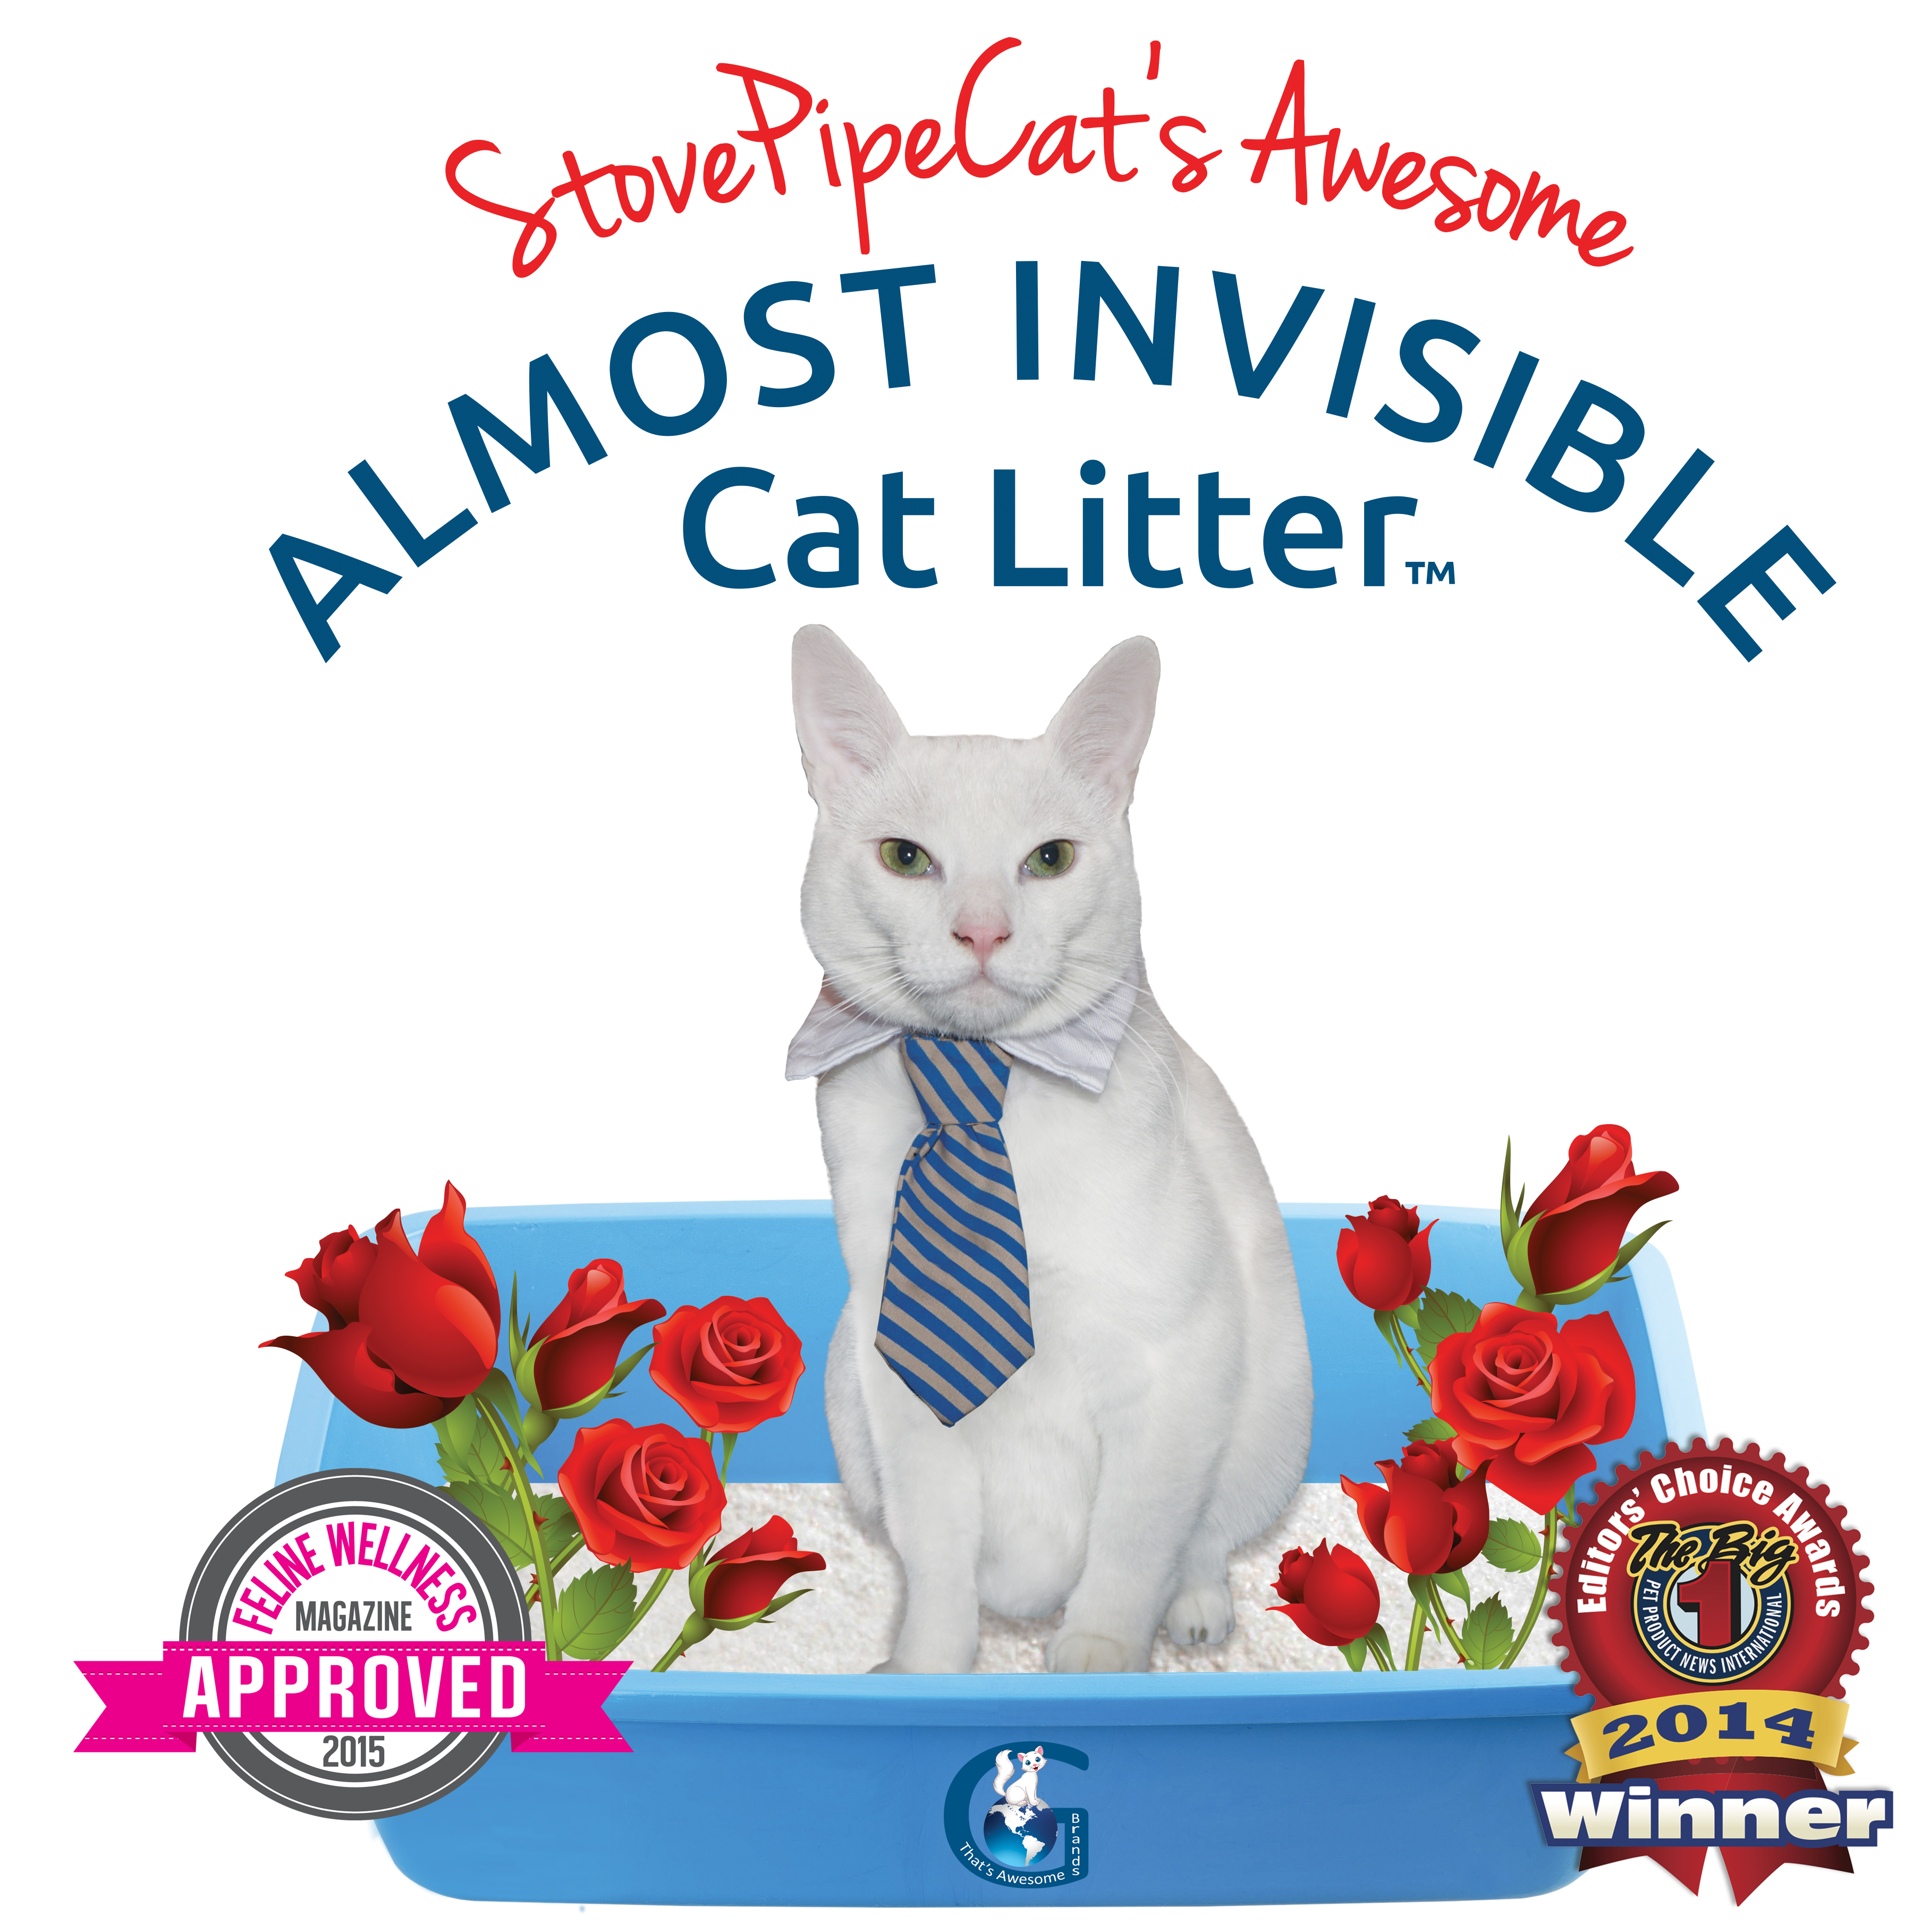 almost-invisible-catlitter-logo-stovepipecat-stovepipe.jpg